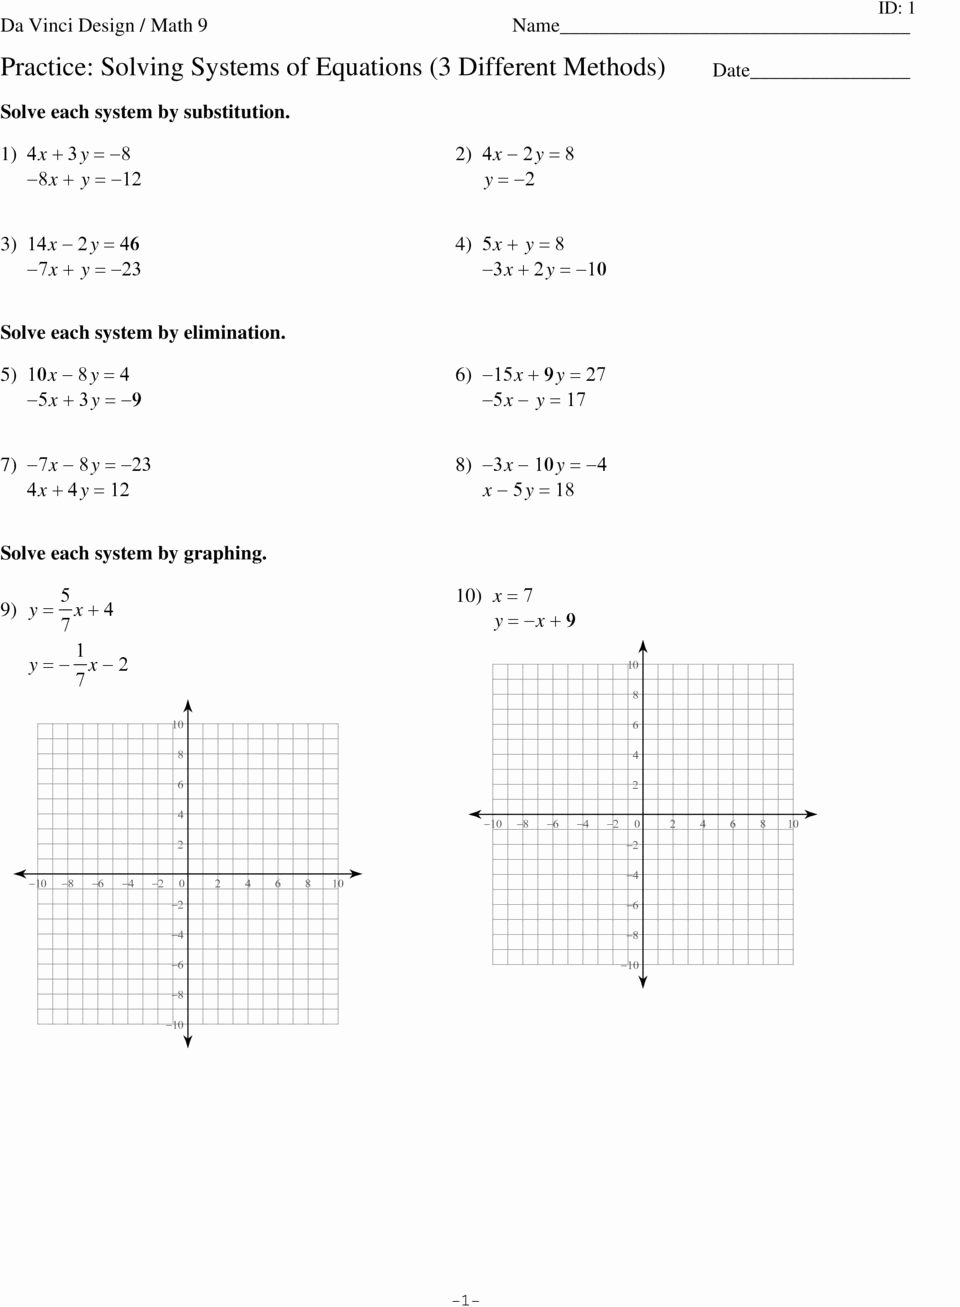 Substitution Method Worksheet Answer Key Fresh Lesson 8 Homework Practice solve Systems Equations